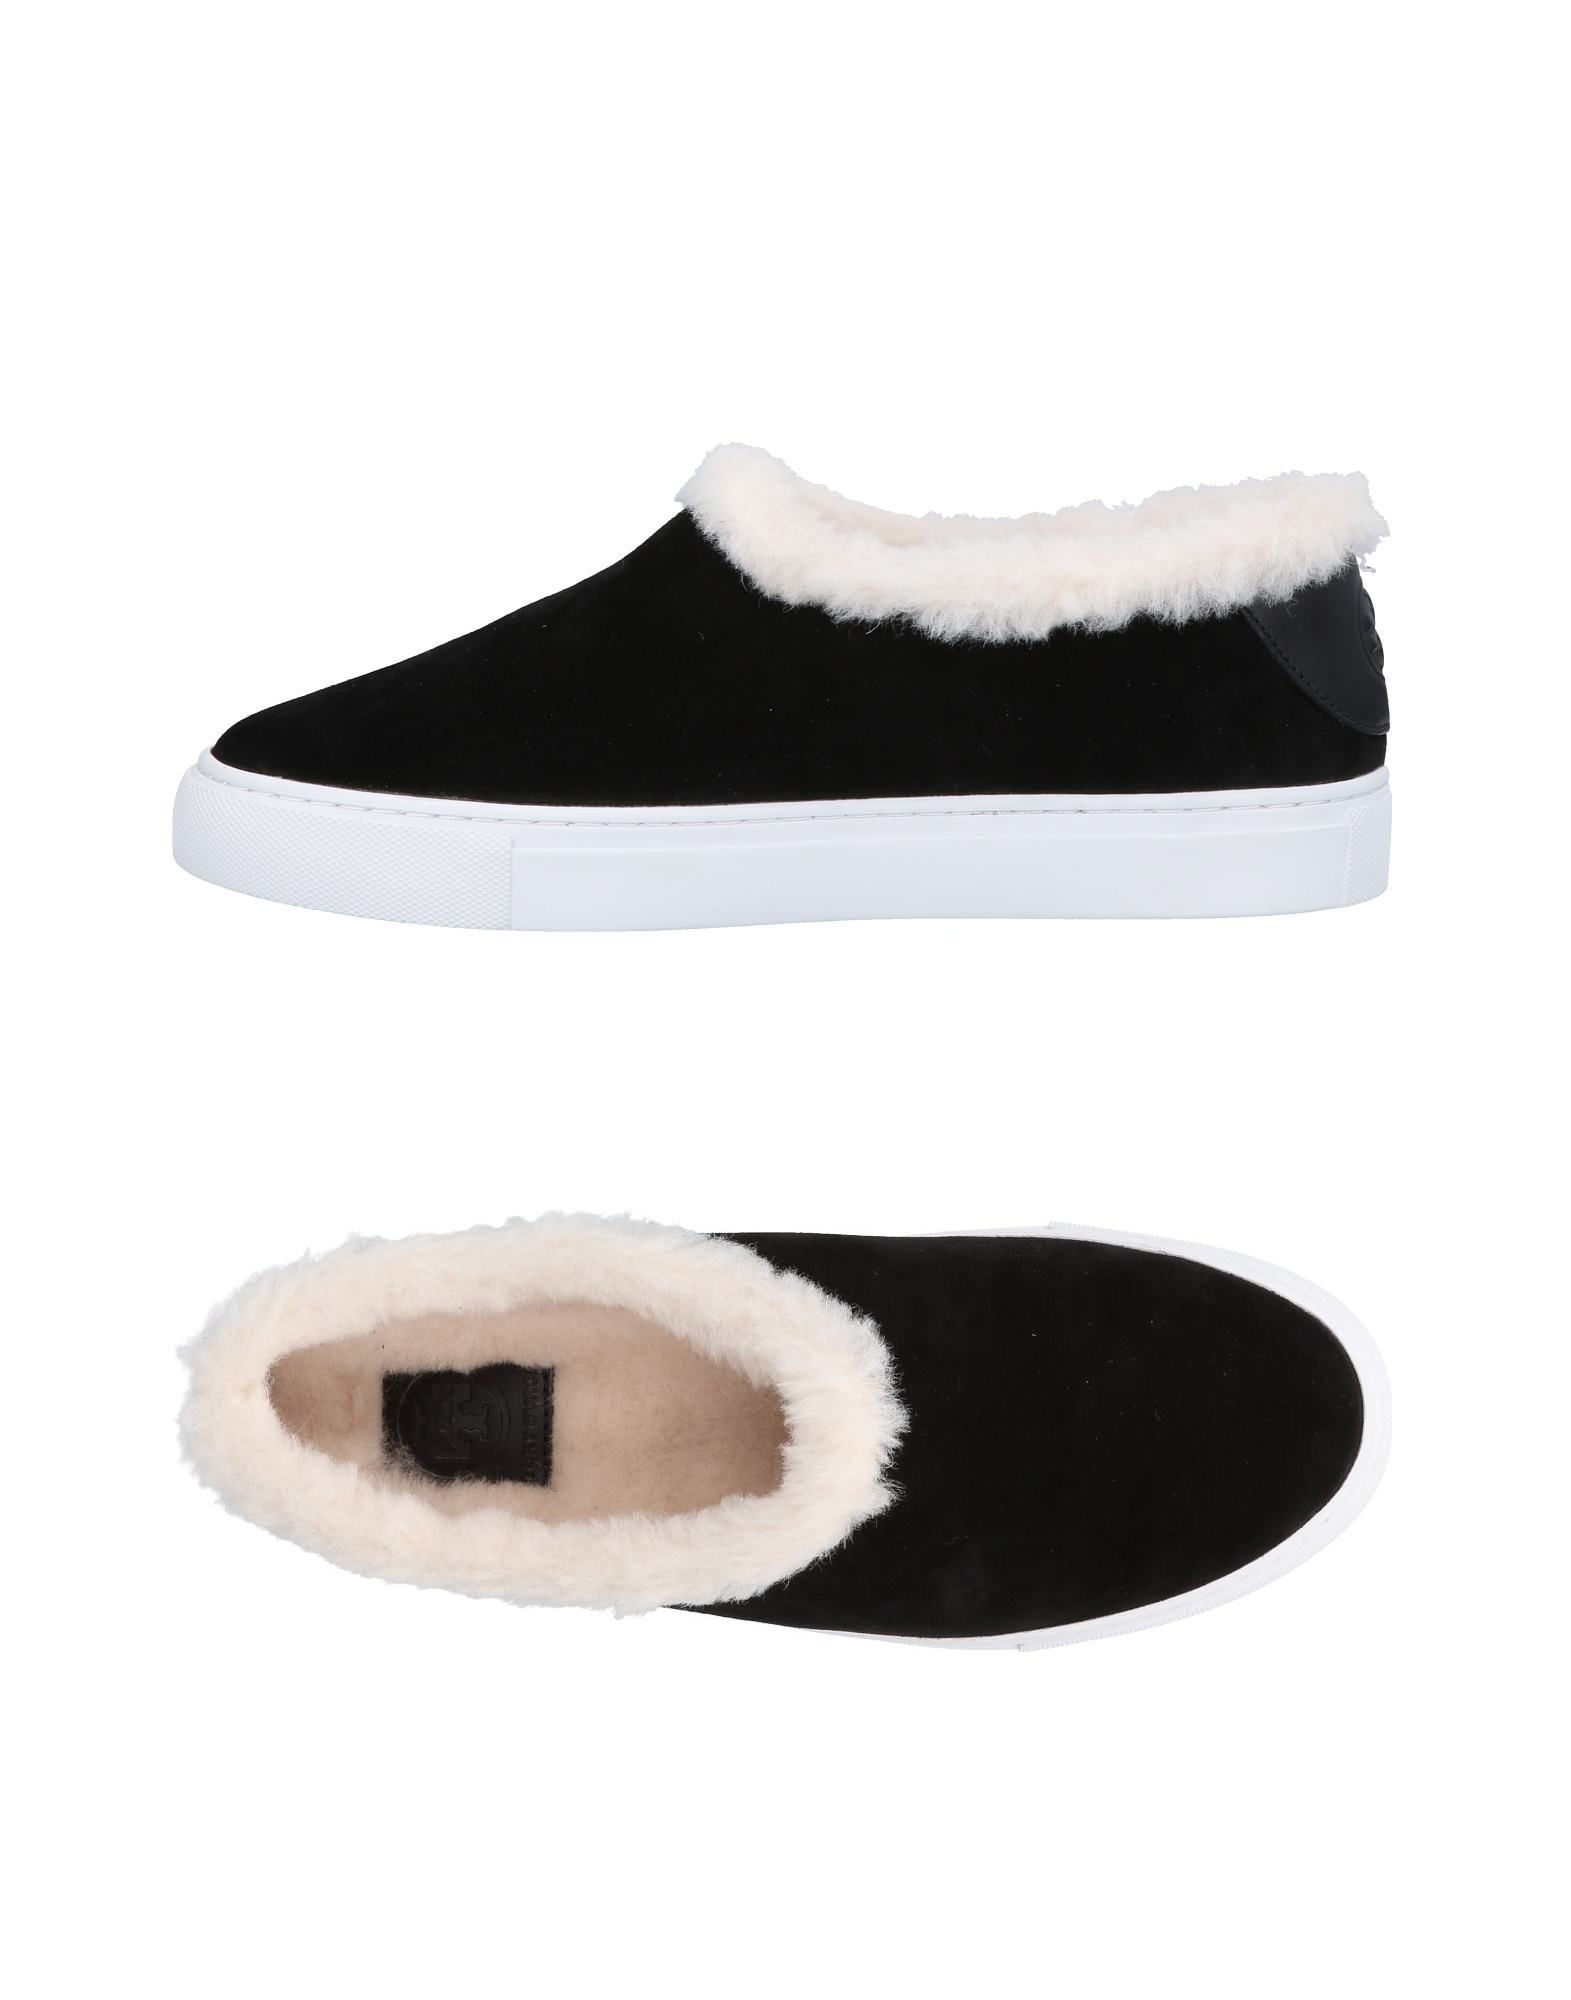 Sneakers Tory Burch Donna - 11452420ID